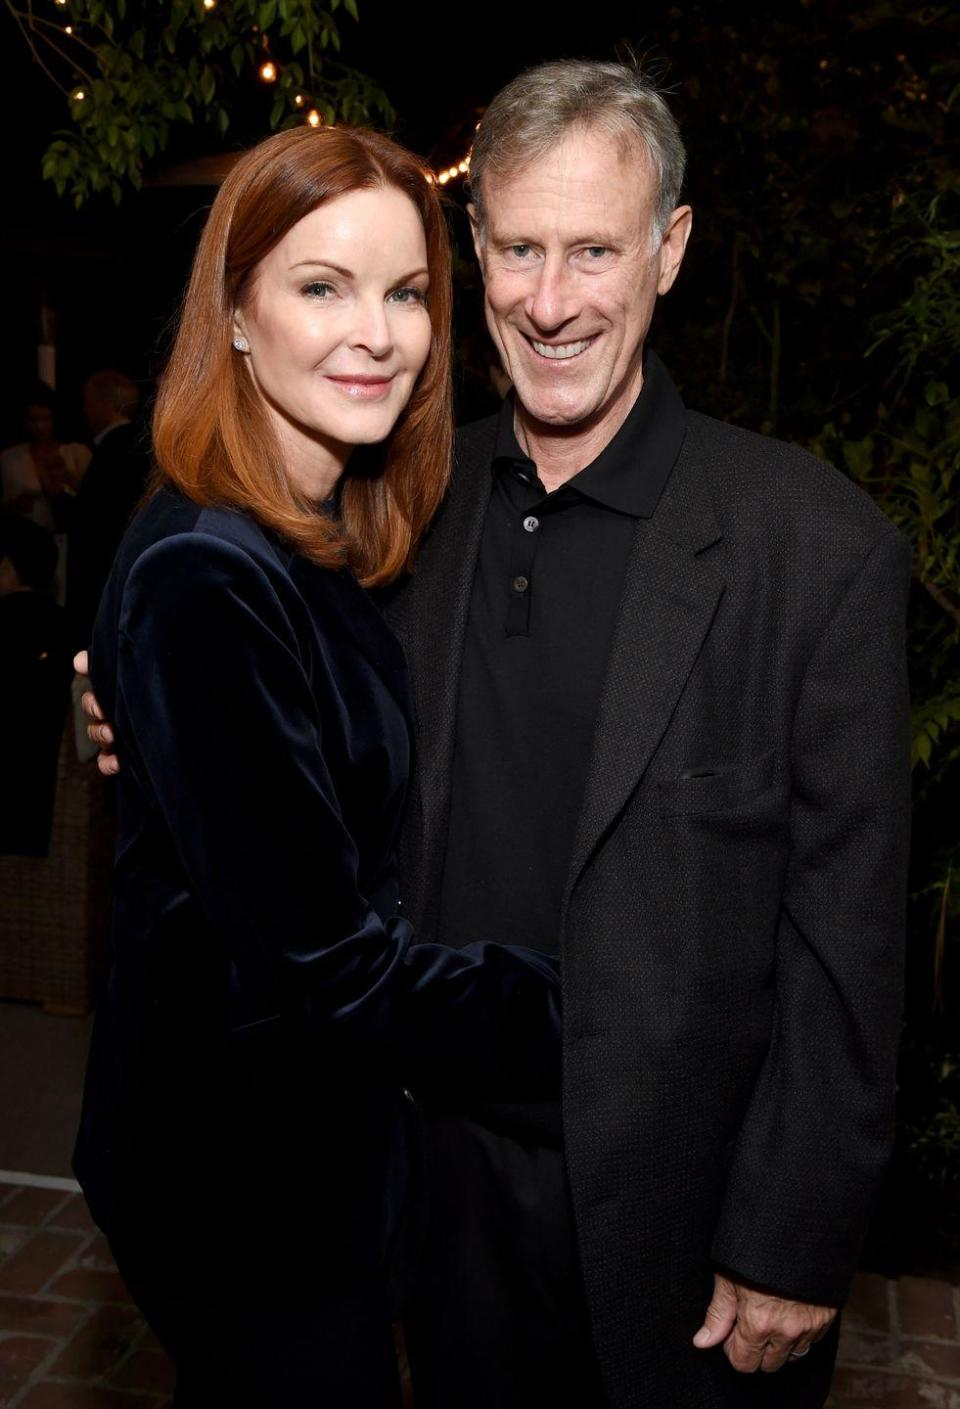 <p>Marcia Cross met her stockbroker husband, Tom Mahoney, in a shop in L.A. in 2004. After marrying in 2006, Cross gave birth to twin daughters the following year.</p>